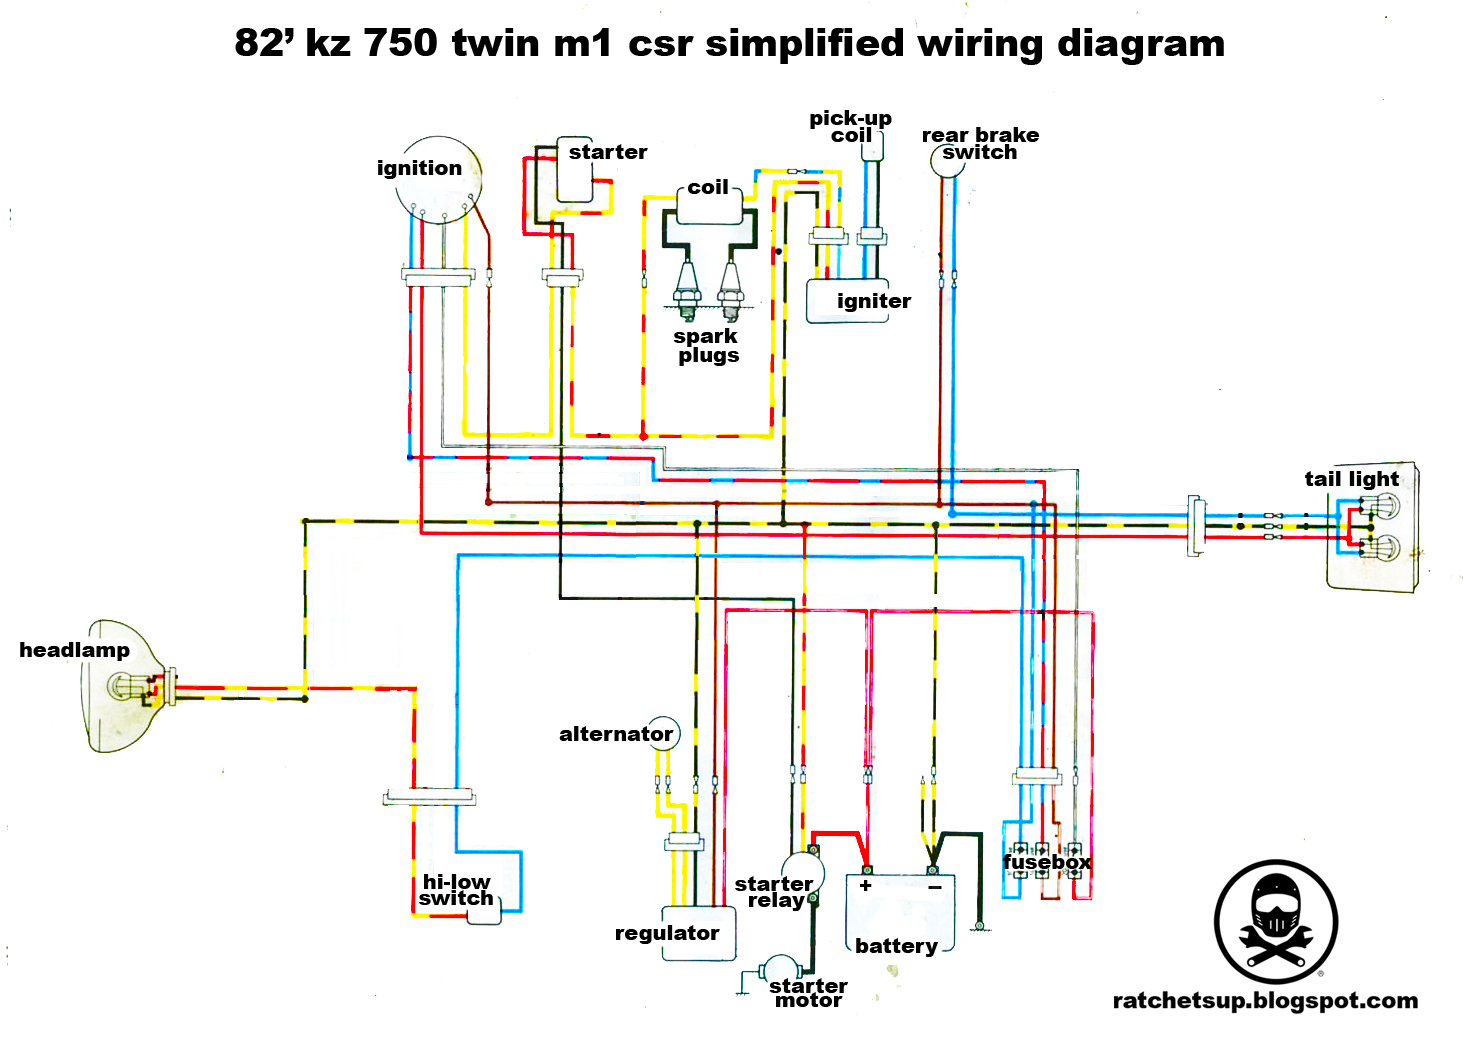 kz750+simple+diagram simplified minimal kz750 csr wiring diagram kzrider forum kz750 wiring diagram at crackthecode.co